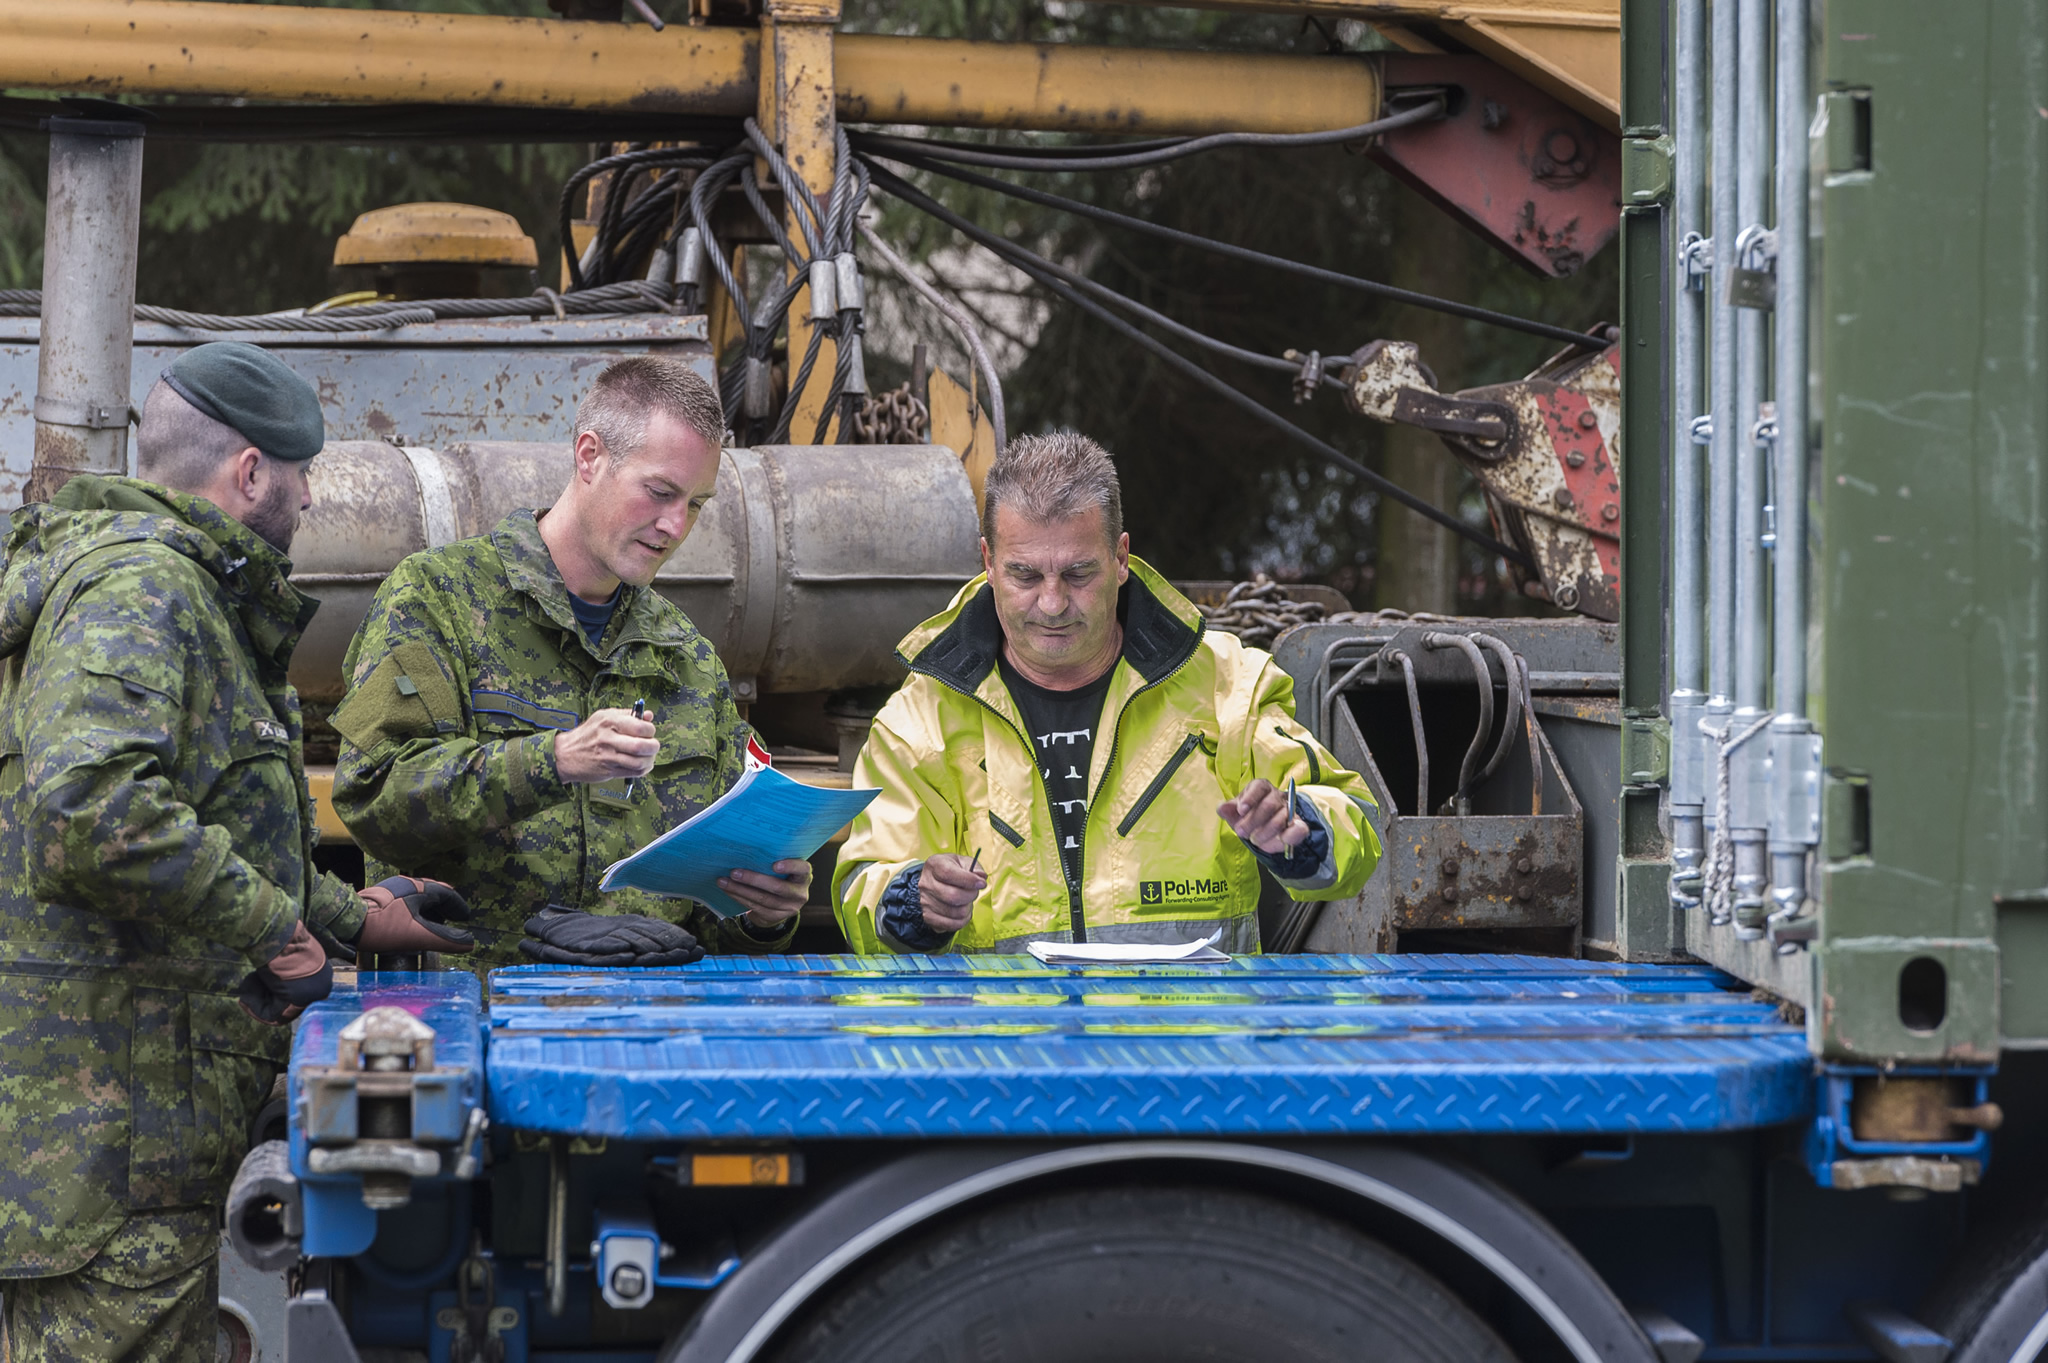 Glebokie, Poland. 11 September 2015 – A traffic technician finalizes paperwork with a Polish driver contracted to transport a sea container to Ex SILVER ARROW during Operation REASSURANCE. (Photo: Corporal Nathan Moulton, Land Task Force Imagery, OP REASSURANCE)